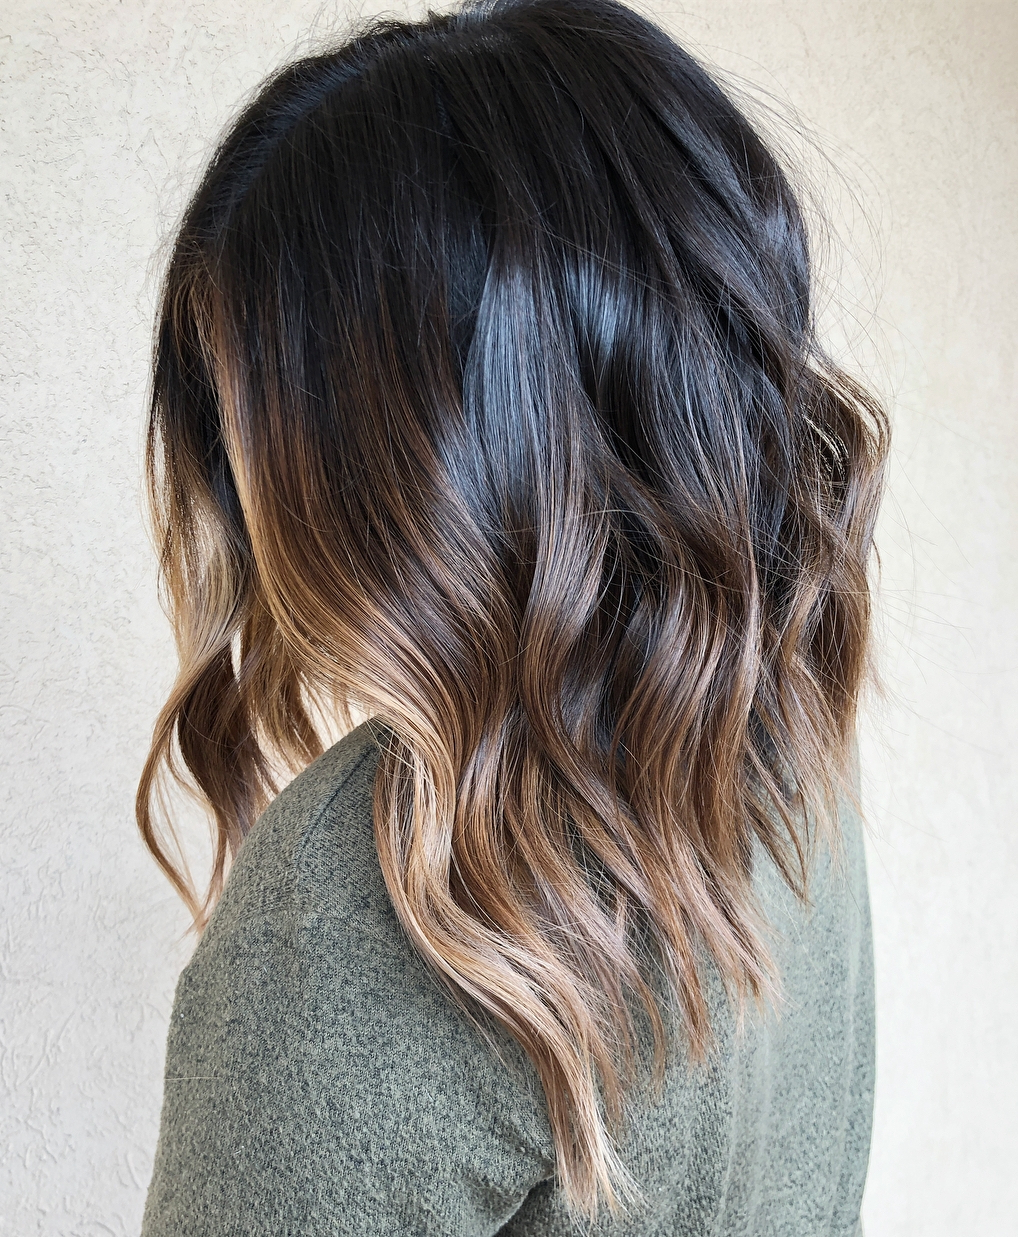 Famous Soft Highlighted Curls Hairstyles With Side Part Inside 20 Best Face Framing Highlights For Every Base Color And (View 8 of 20)